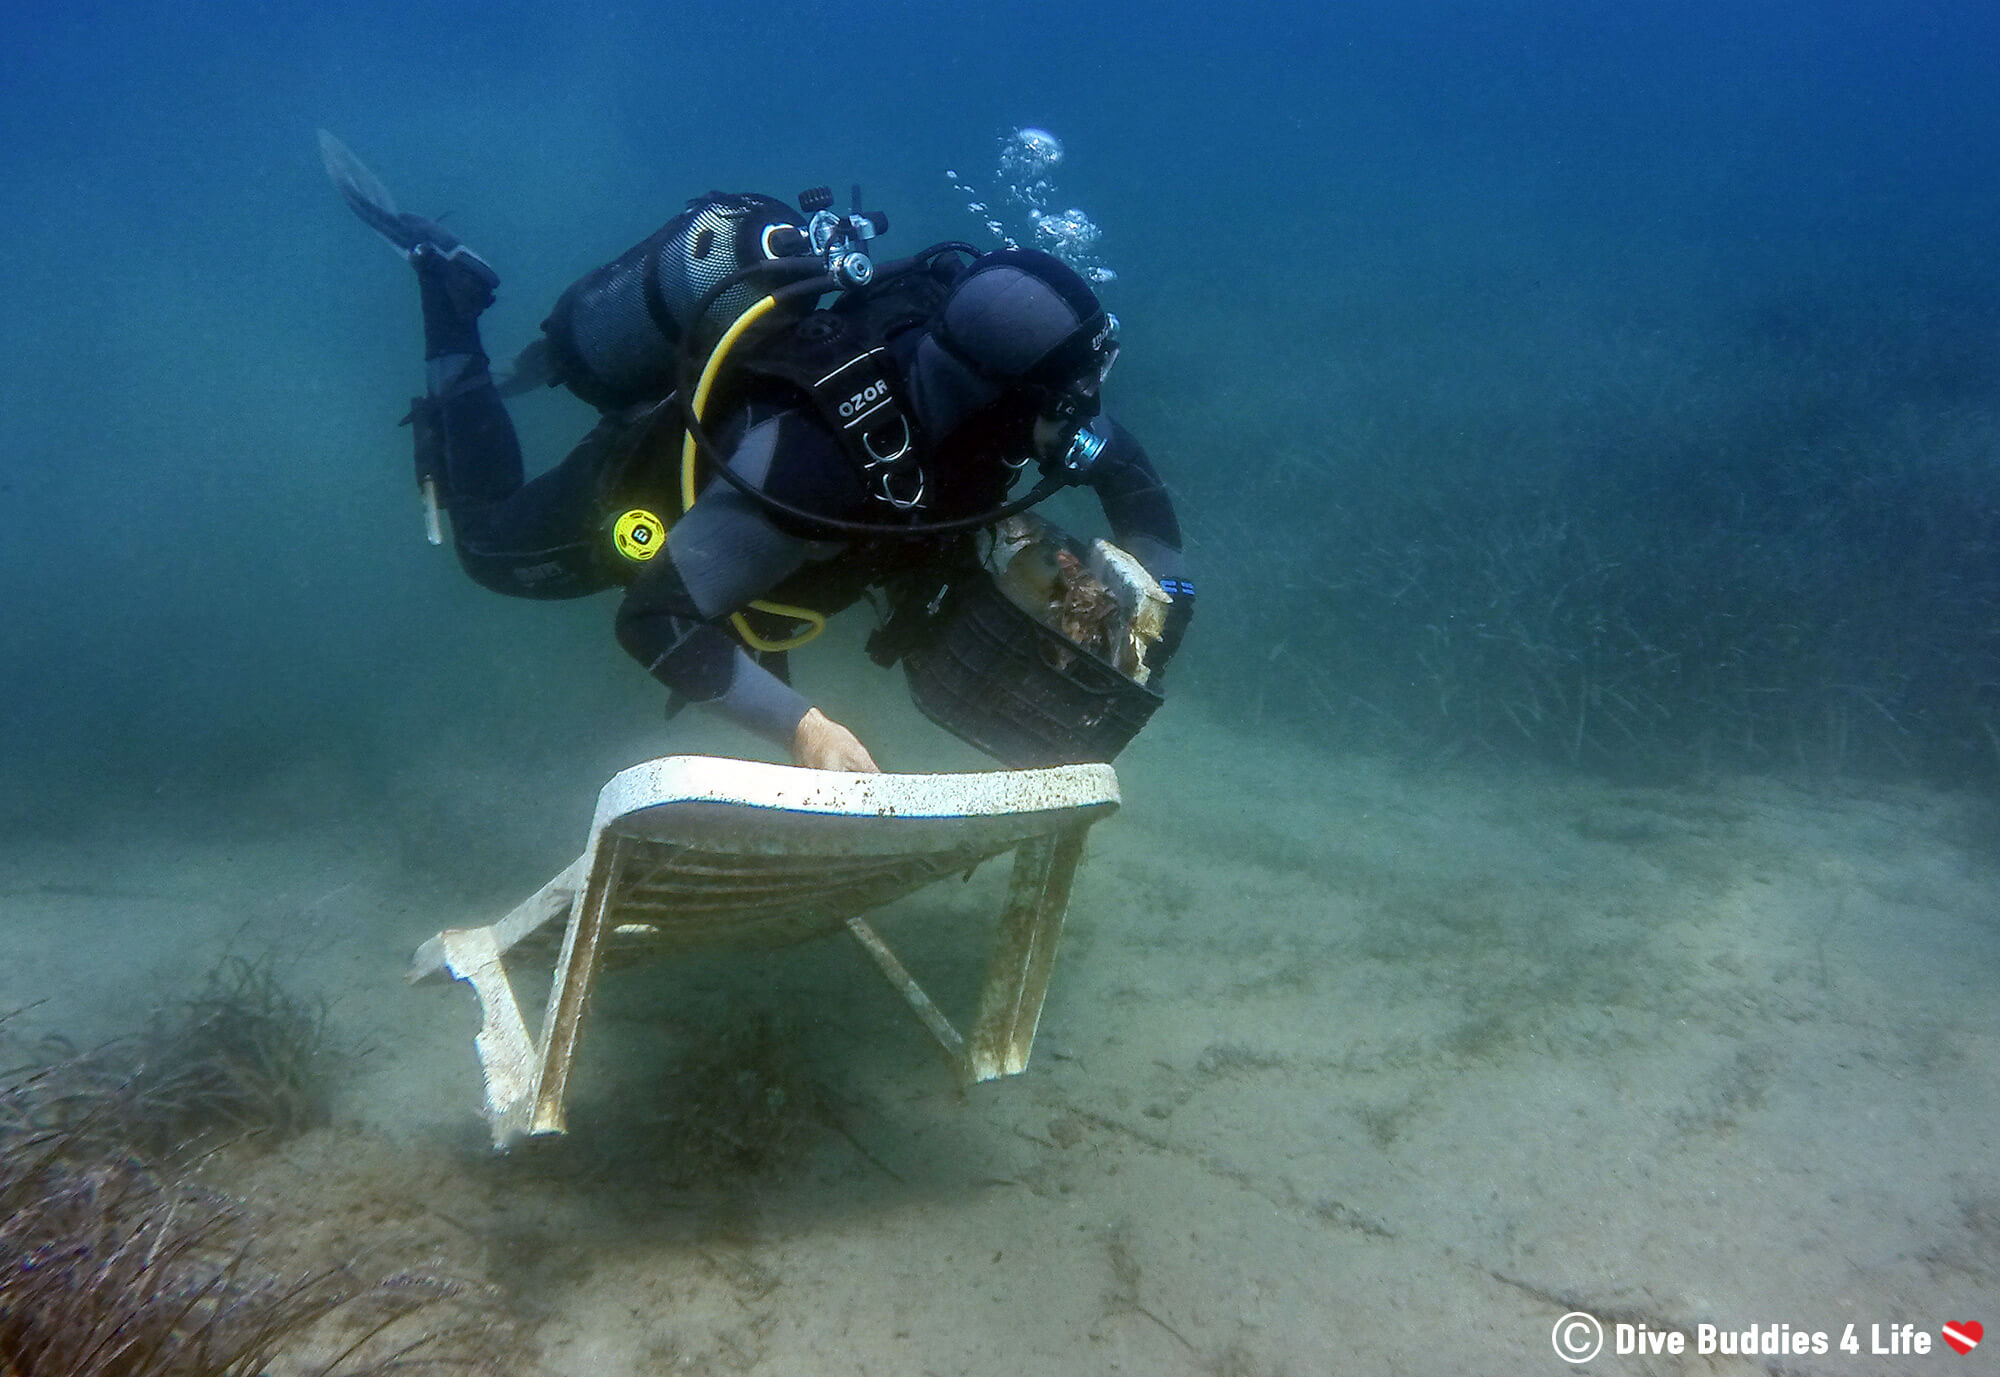 A Scuba Diver Cleaning Up The Bottom Of The Sea In The Balkan Country Of Albania, Europe